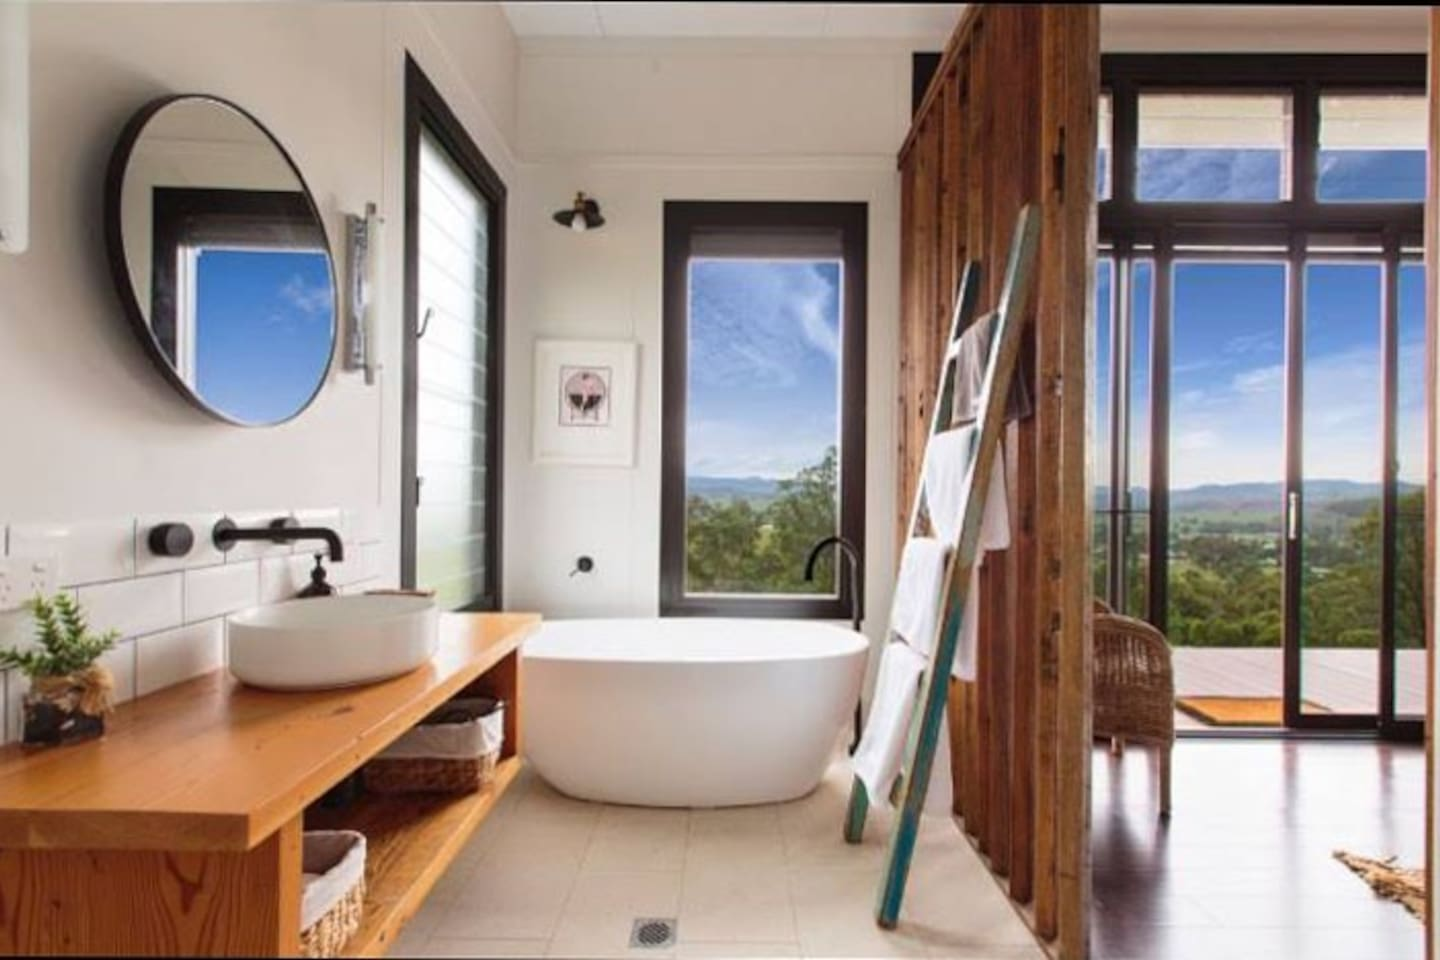 The Eco-Cabin's beautiful bathroom has a bath and shower and outstanding views